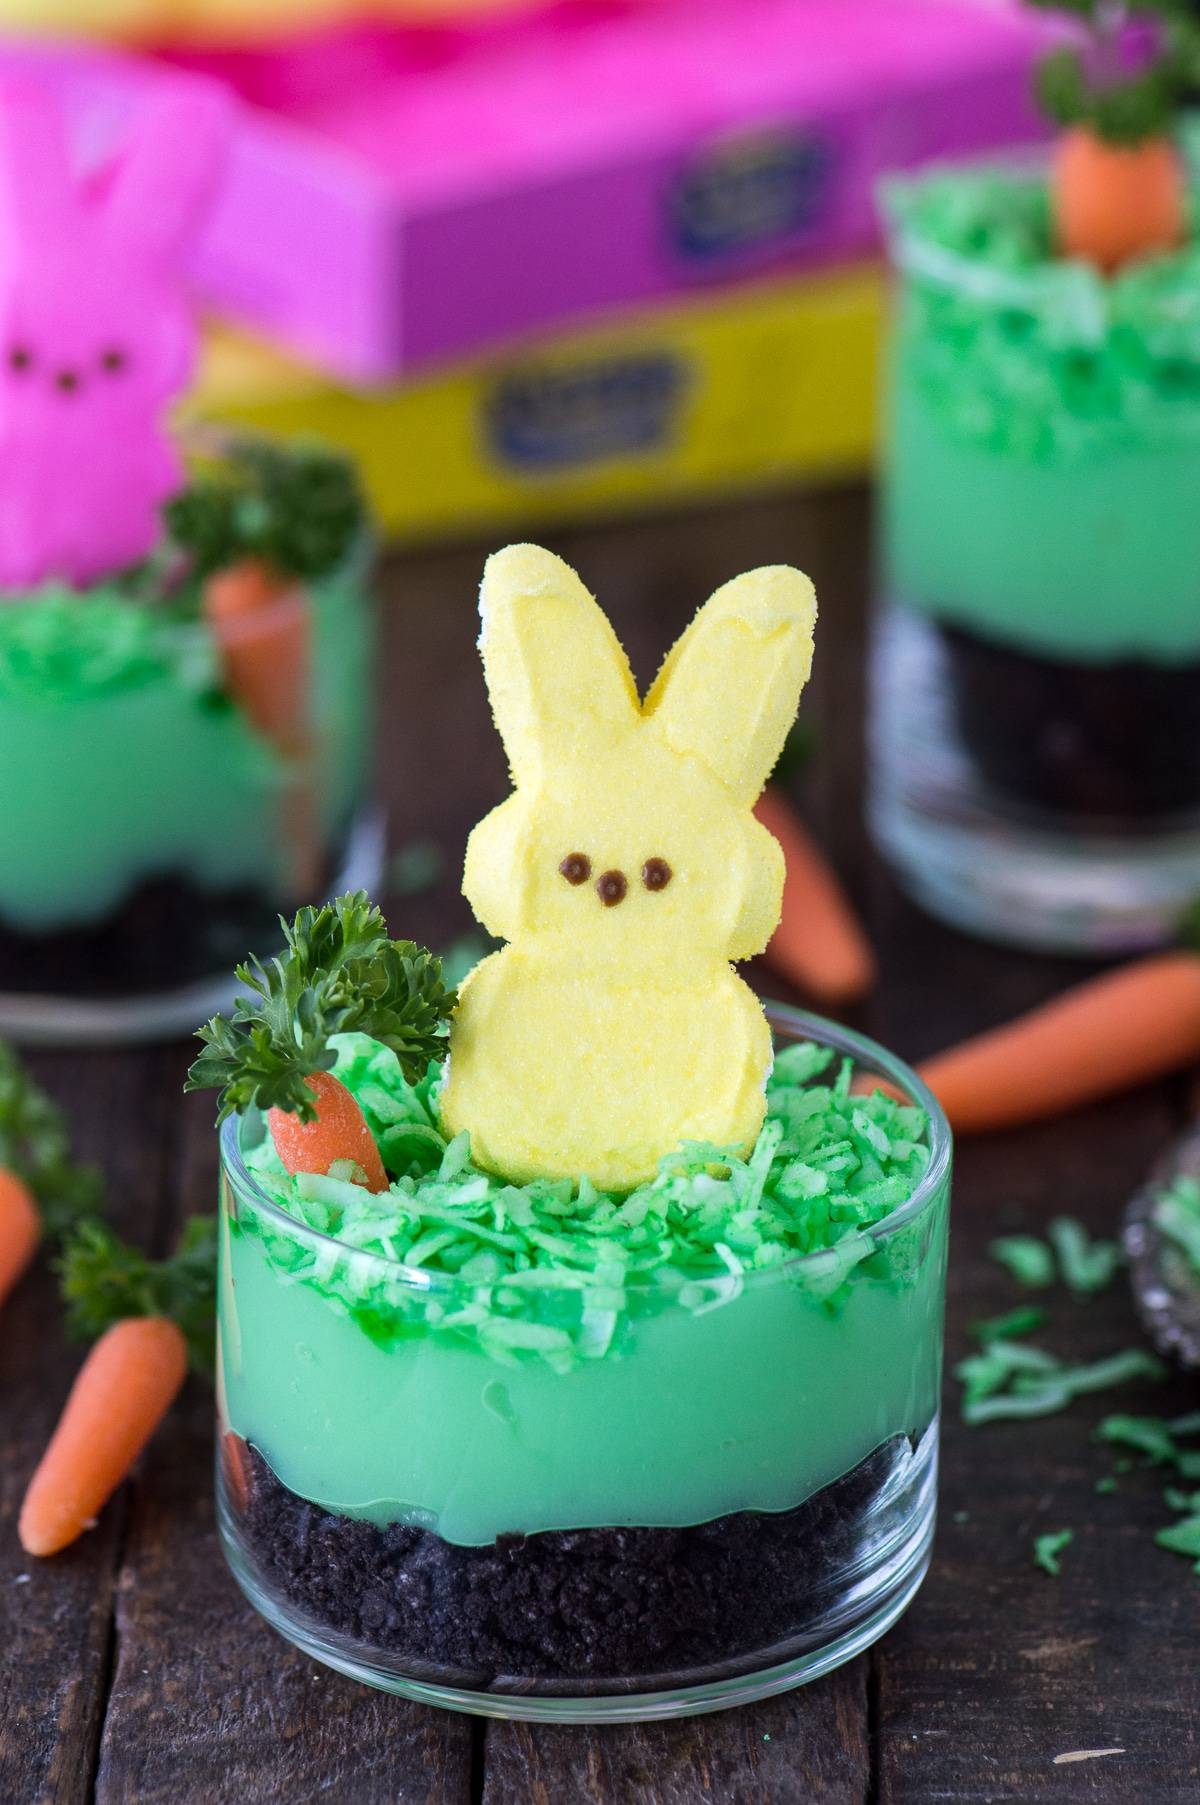 Peeps bunny pudding dirt cups with oreos, pudding, coconut, a mini carrot and a peep in a glass dessert bowl